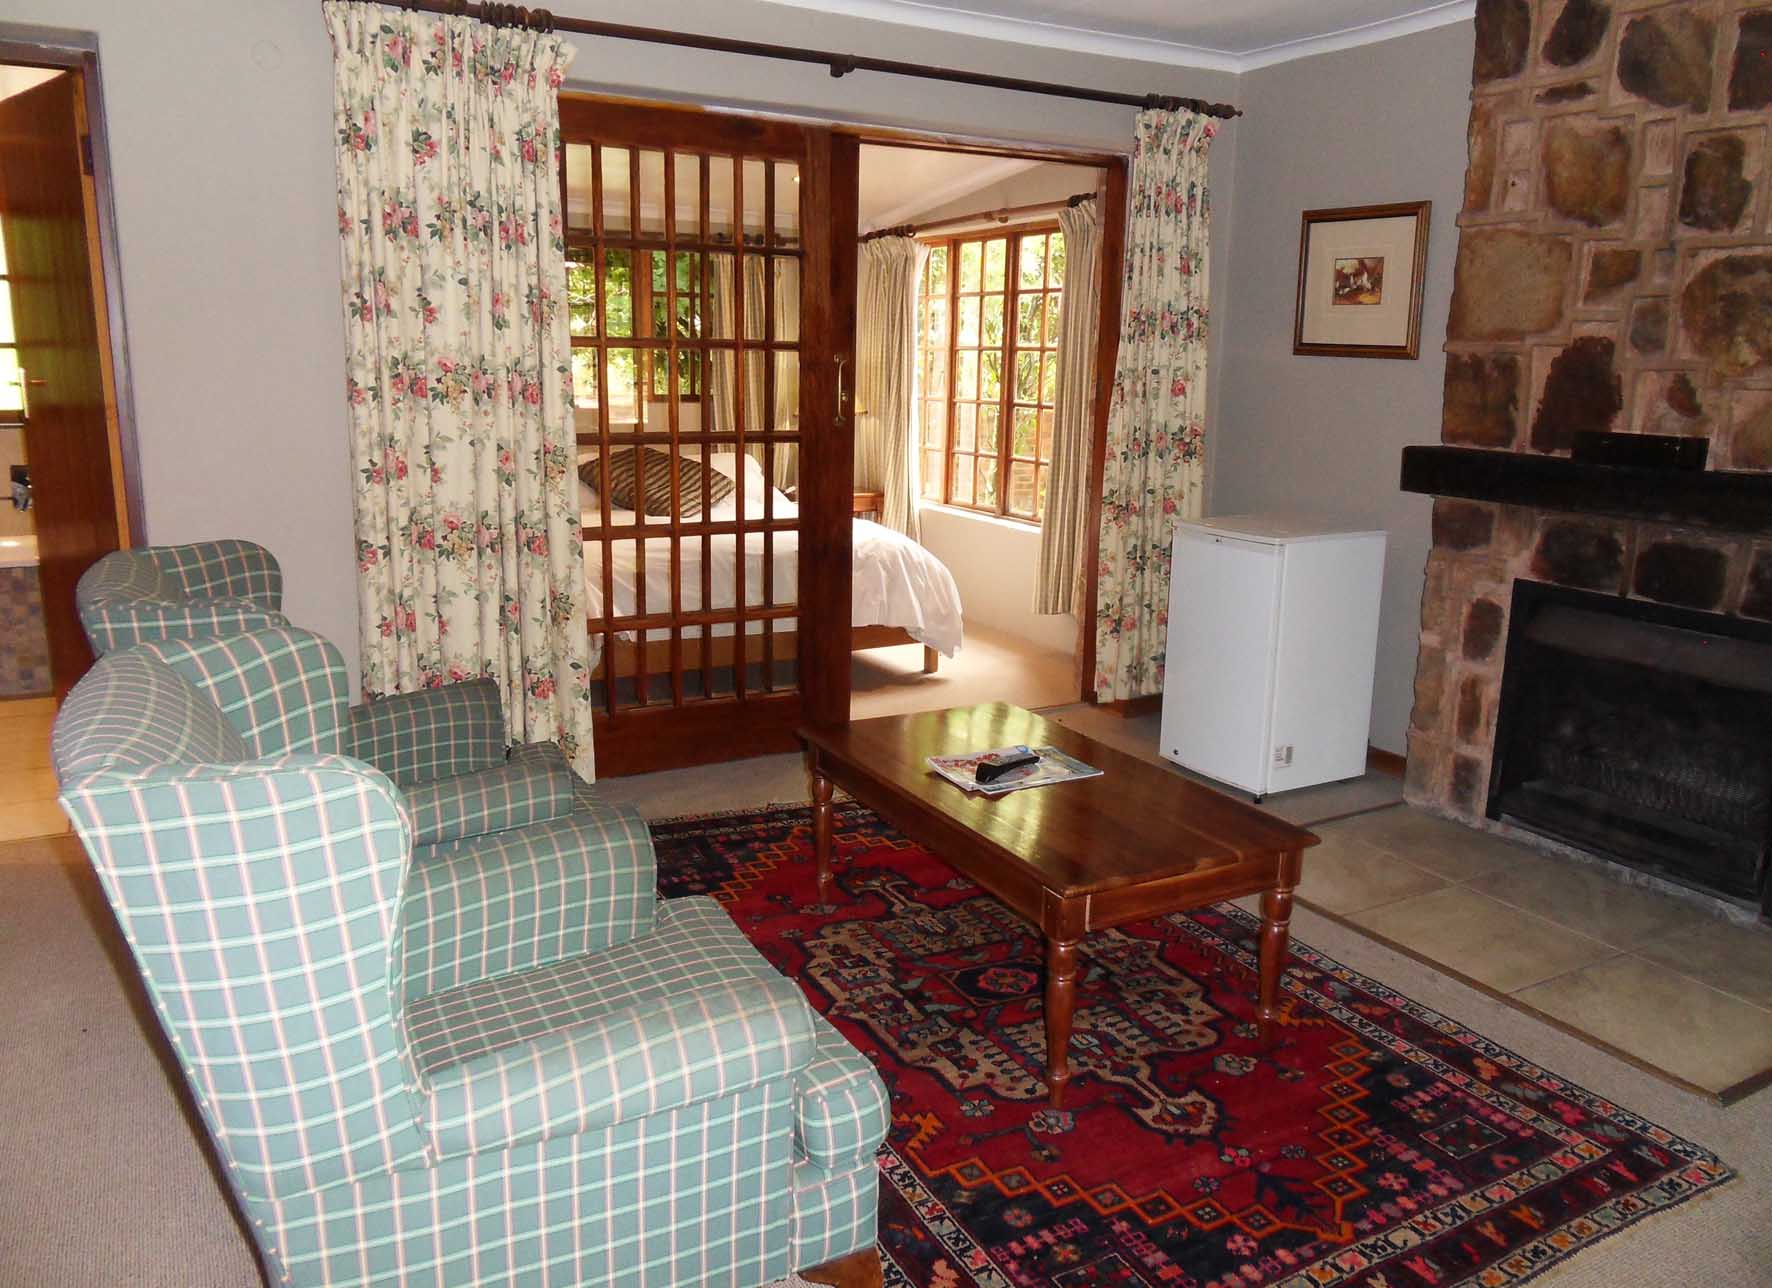 http://critchley.hotelian.co.za/wp-content/uploads/2016/05/Hotelian_Critchley_Hackle_Garden_Cottage_02.jpg